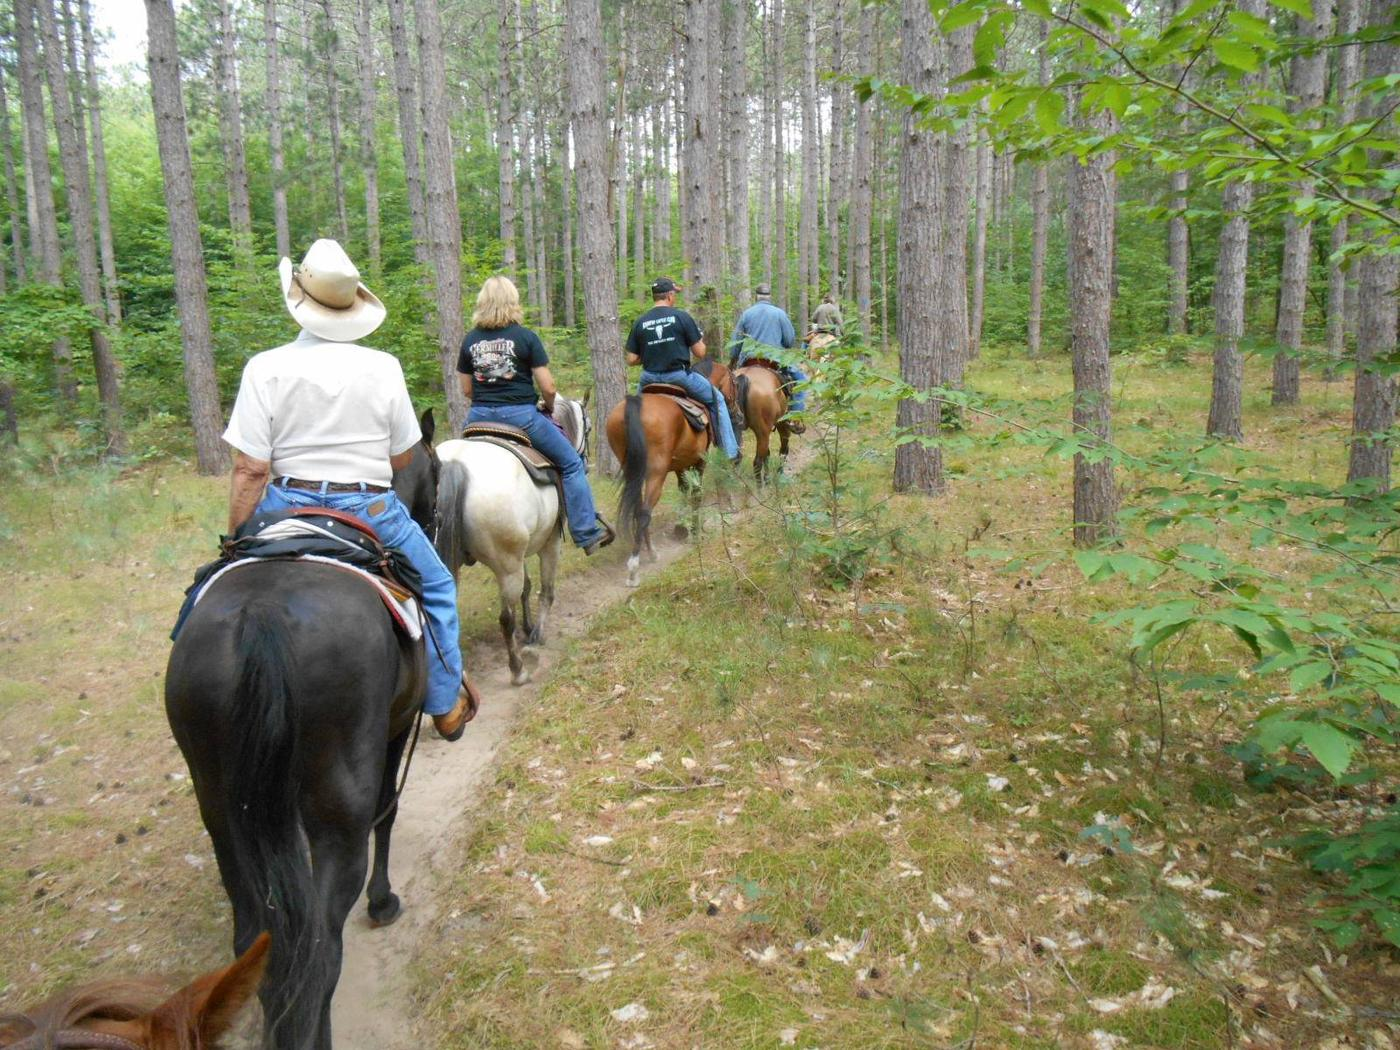 Hungerford Equestrian Trail, Manistee National ForestMake your next adventure the Manistee National Forest Hungerford Equestrian Trail!